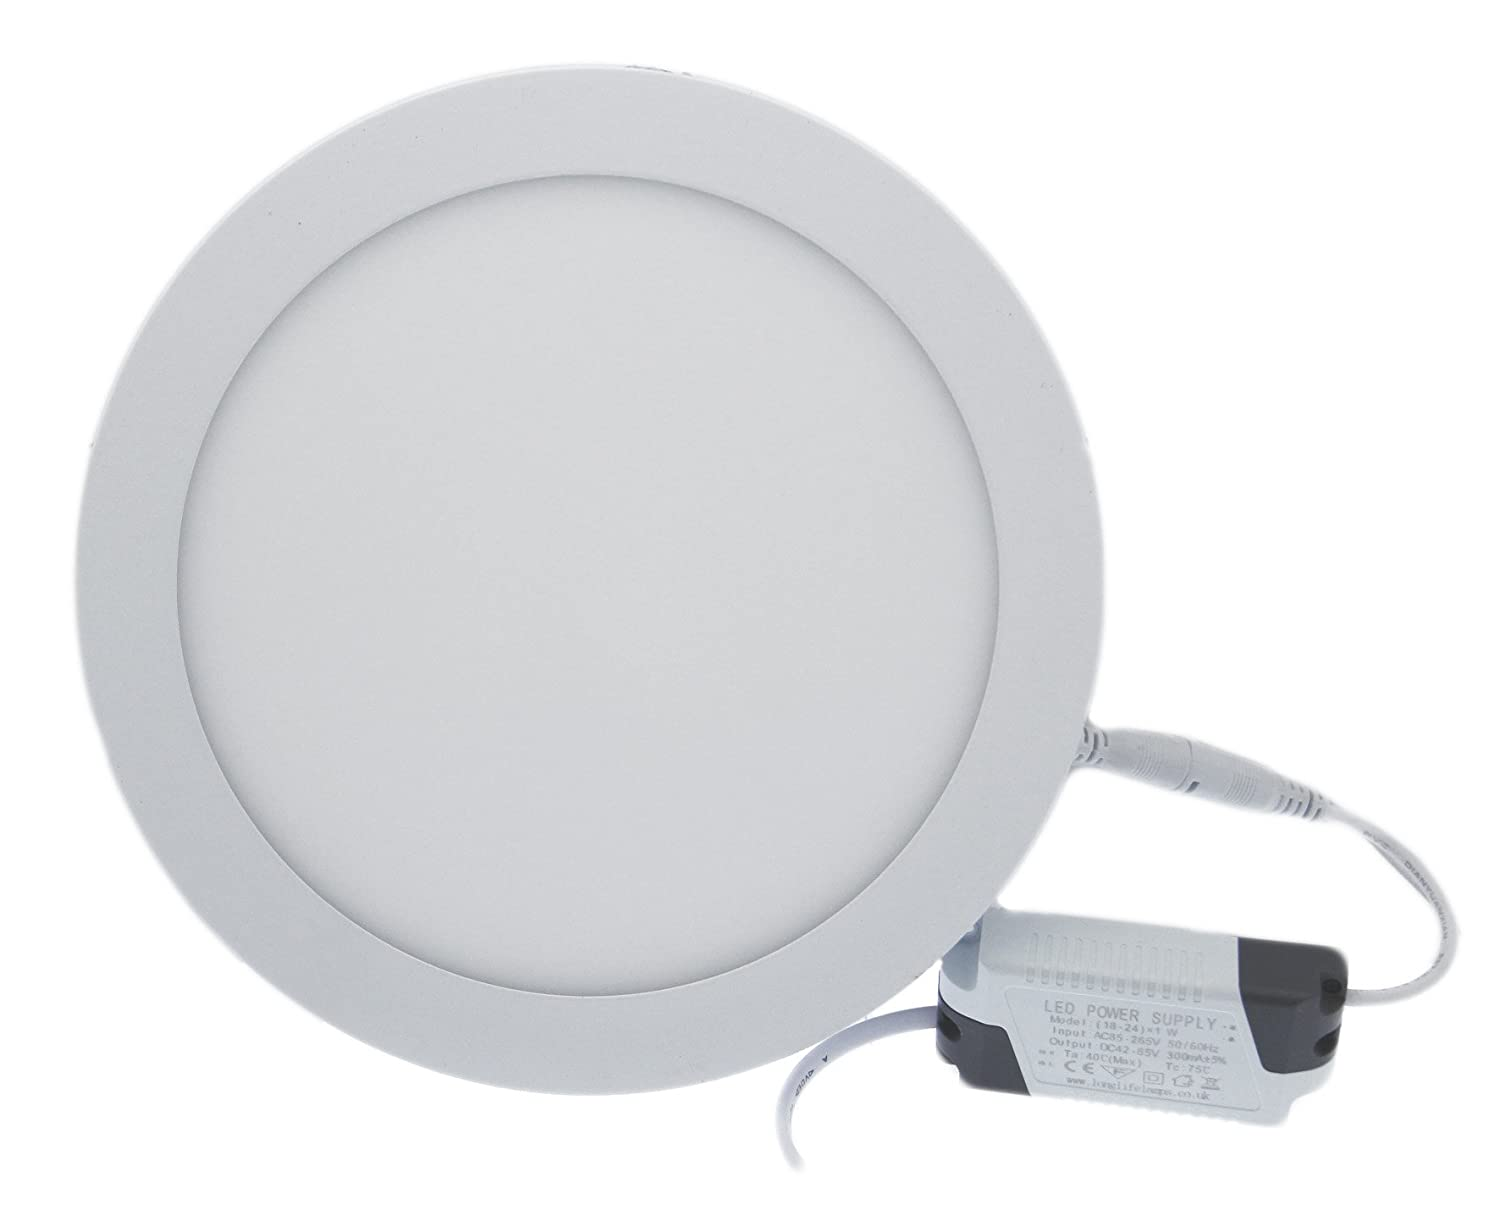 18W LED White Body Round Surface Mount Ceiling Panel Down Light Cool White 6500K Super Bright [Energy Class A+] Long Life Lamp Company